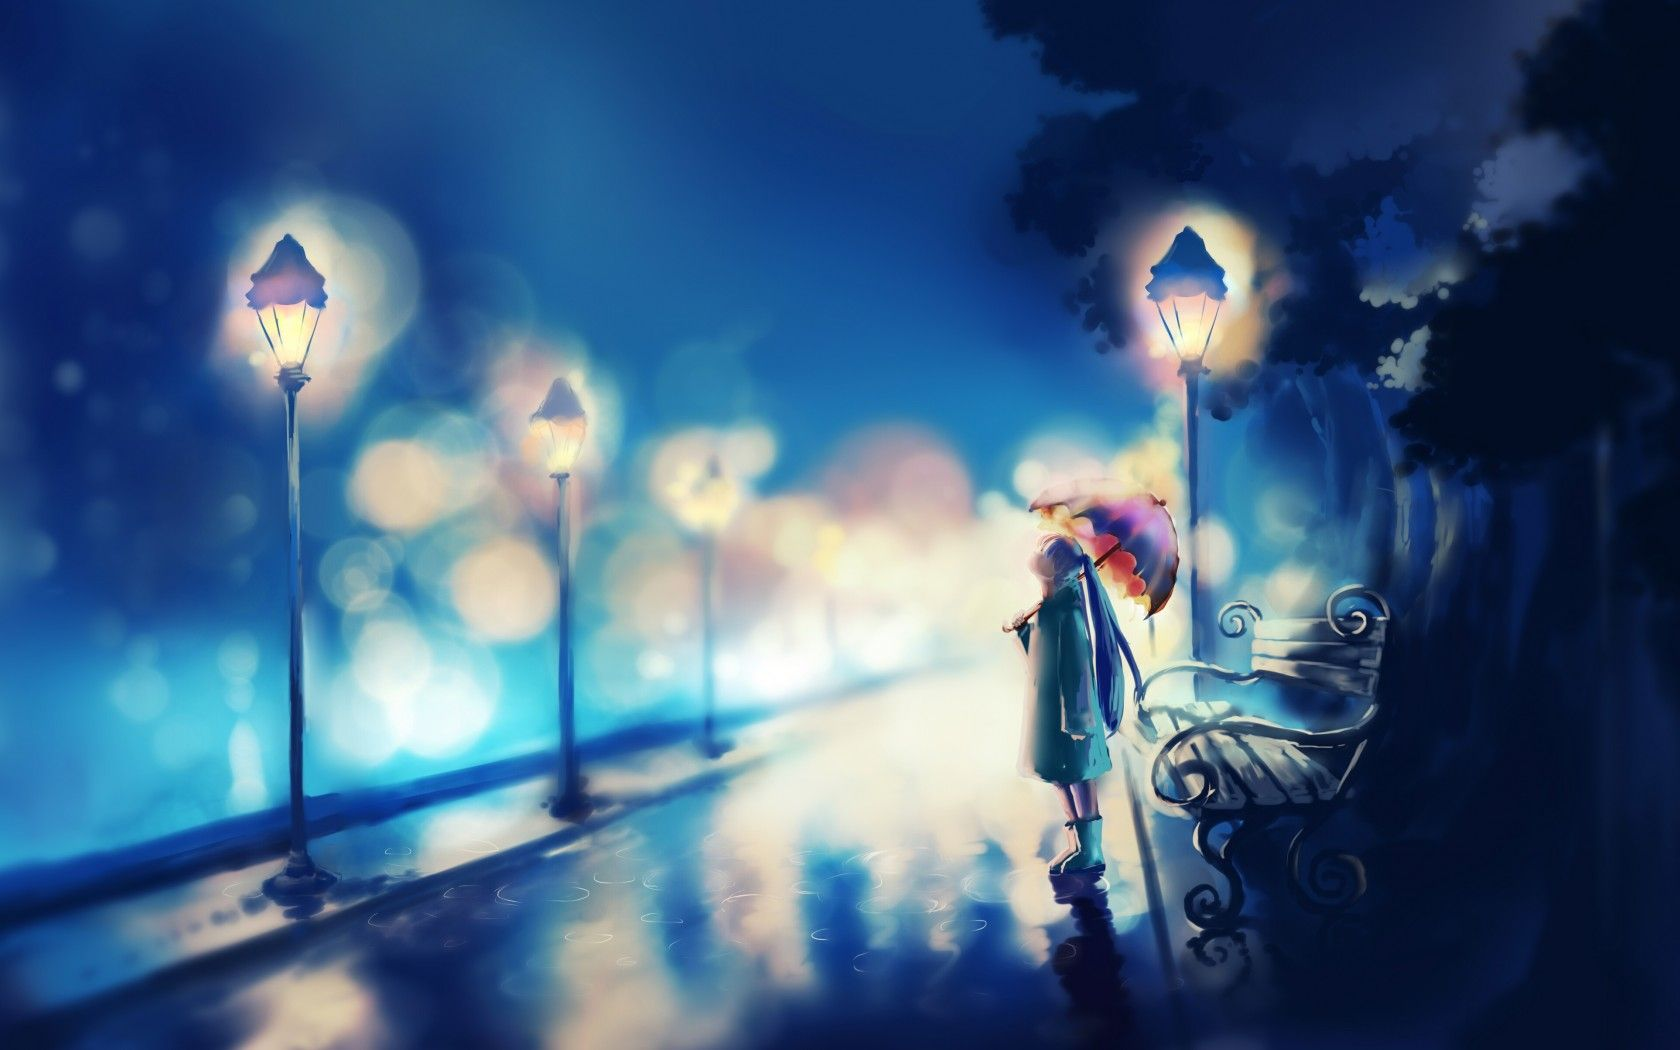 Night Lights Alone Girl Painting Wallpaper Download Hd Anime Wallpaper Anime Scenery Blue Anime